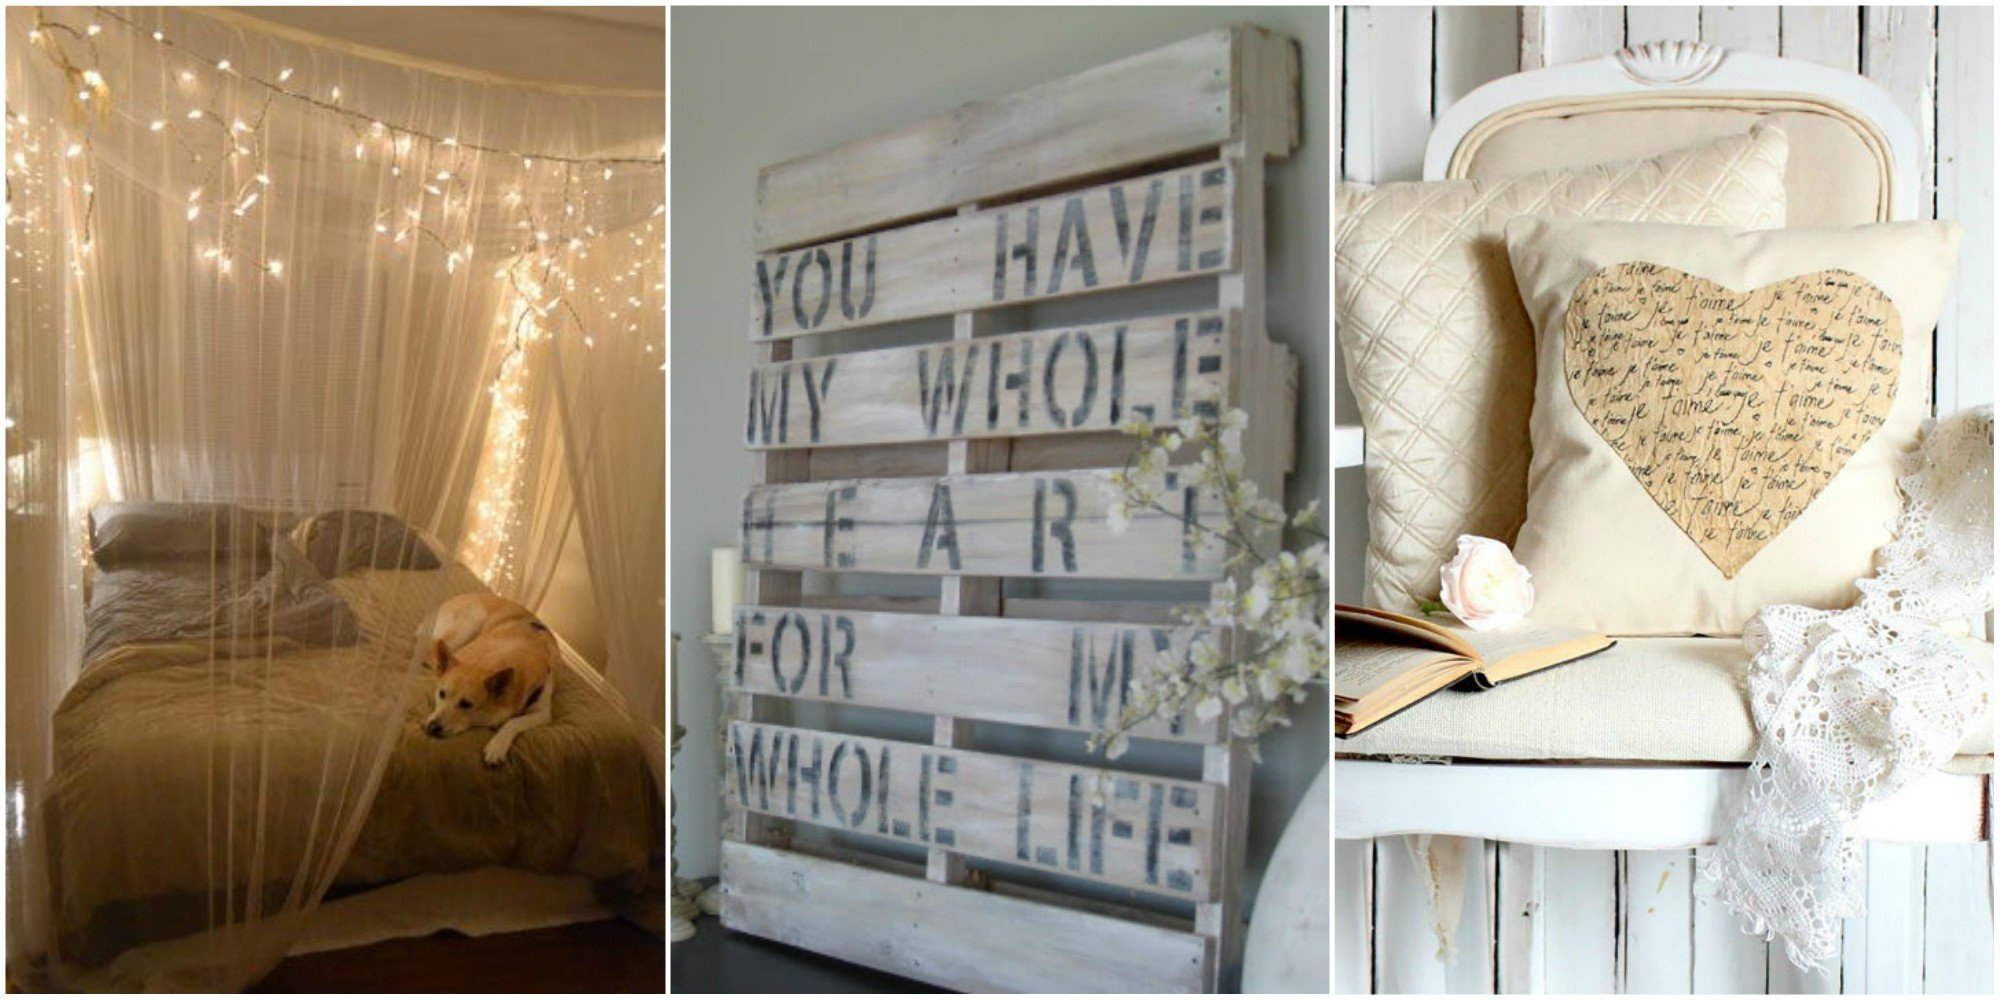 Diy Decor Ideas for Bedroom Best Of 21 Diy Romantic Bedroom Decorating Ideas Country Living